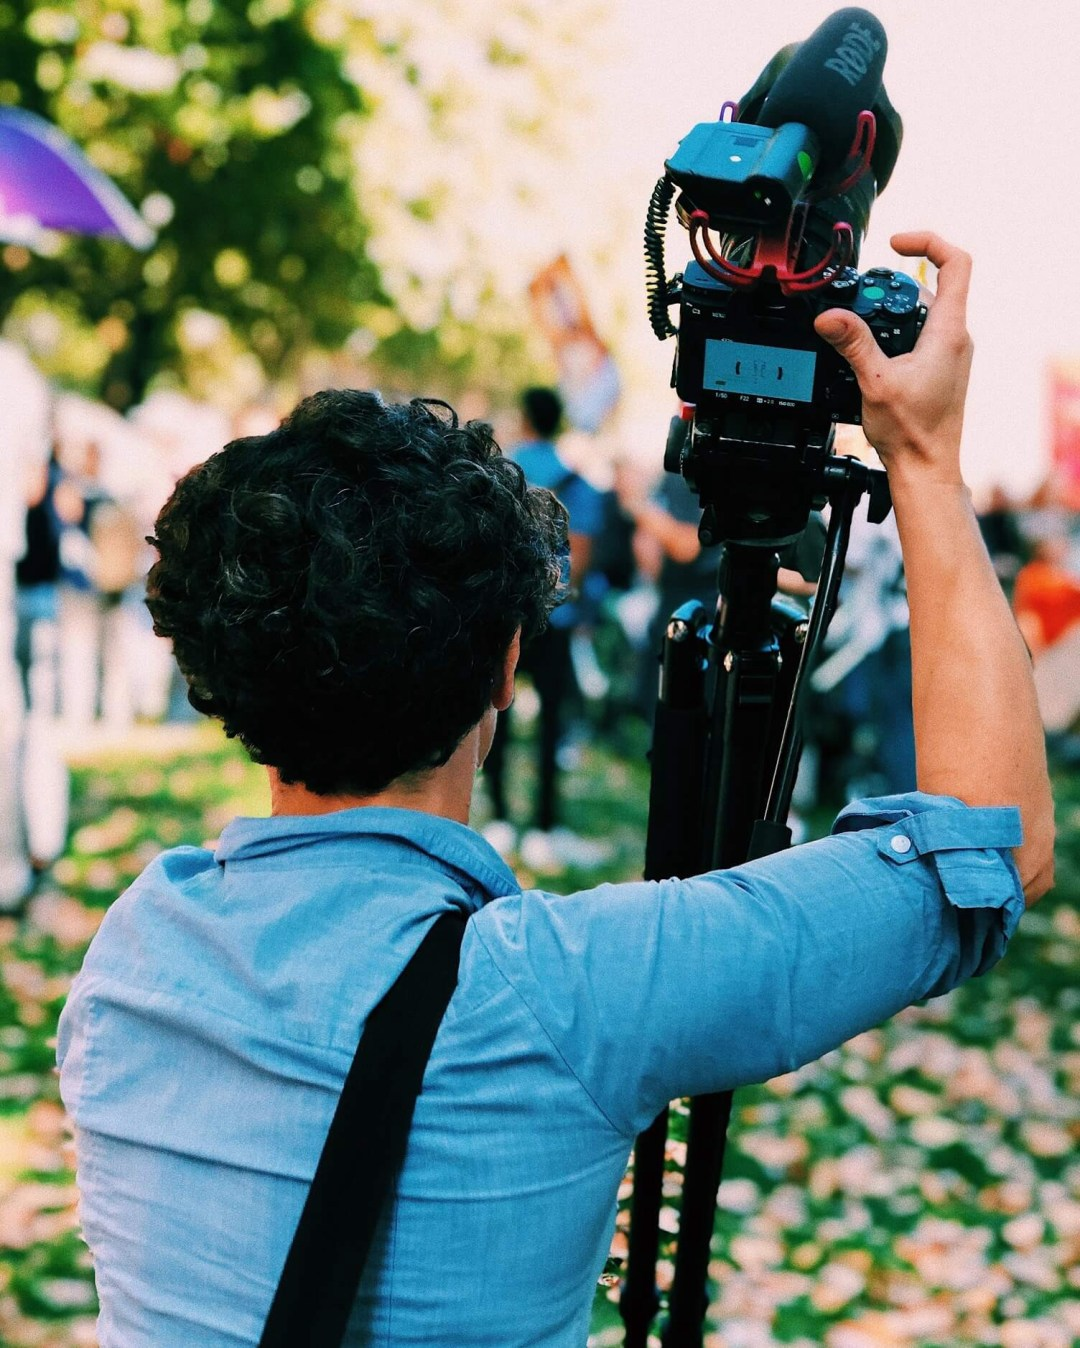 Journalist wearing a blue shirt and holding a camera during a live event on a garden.